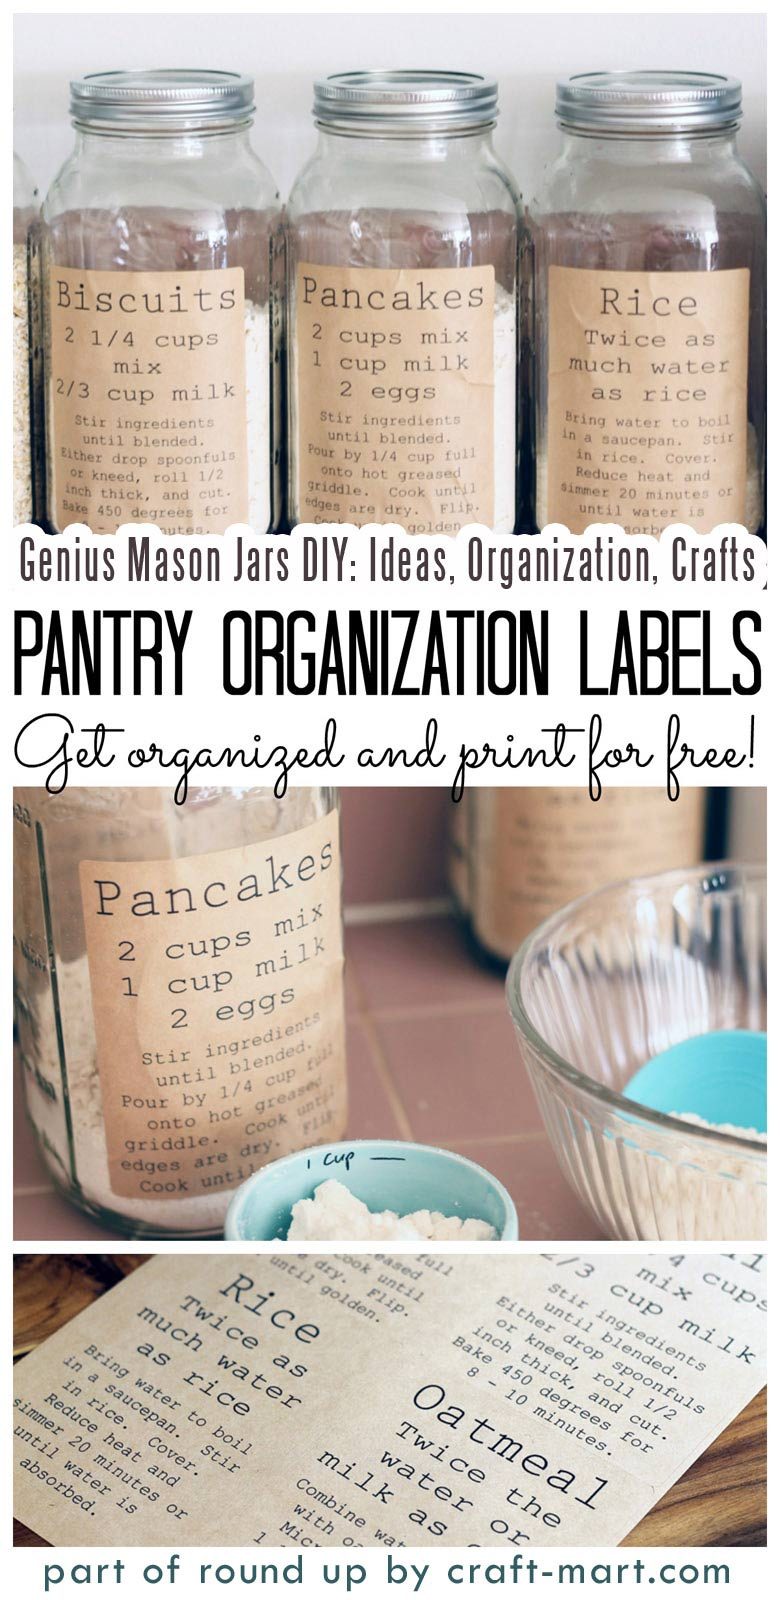 Genius Mason Jars DIY: Ideas, Organization, Crafts collection by craft-mart.com Pantry Organization Labels for Mason Jar Storage Solution #masonjars #masonjarsdiy #diyprojects #masonjarsorganization #masonjarspantry #masonjarsfreelabels